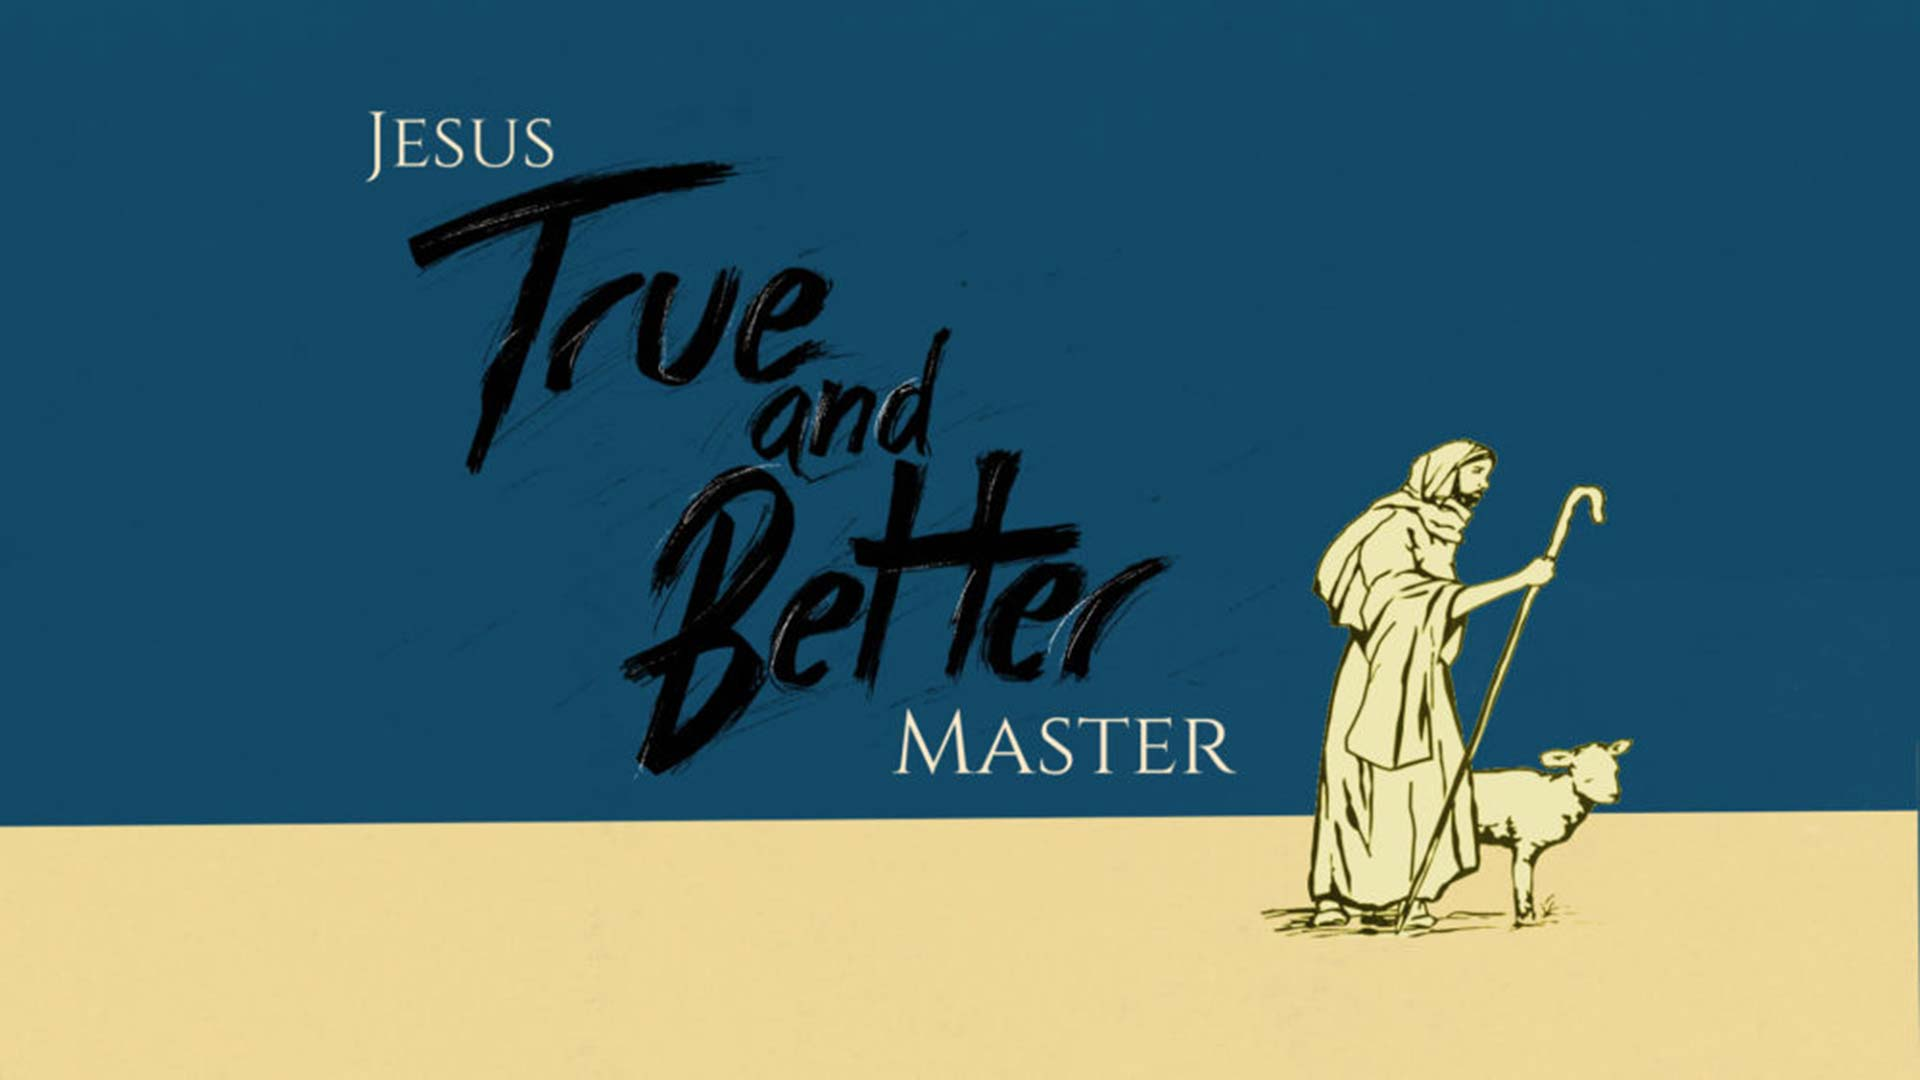 Jesus: True and Better Master Image